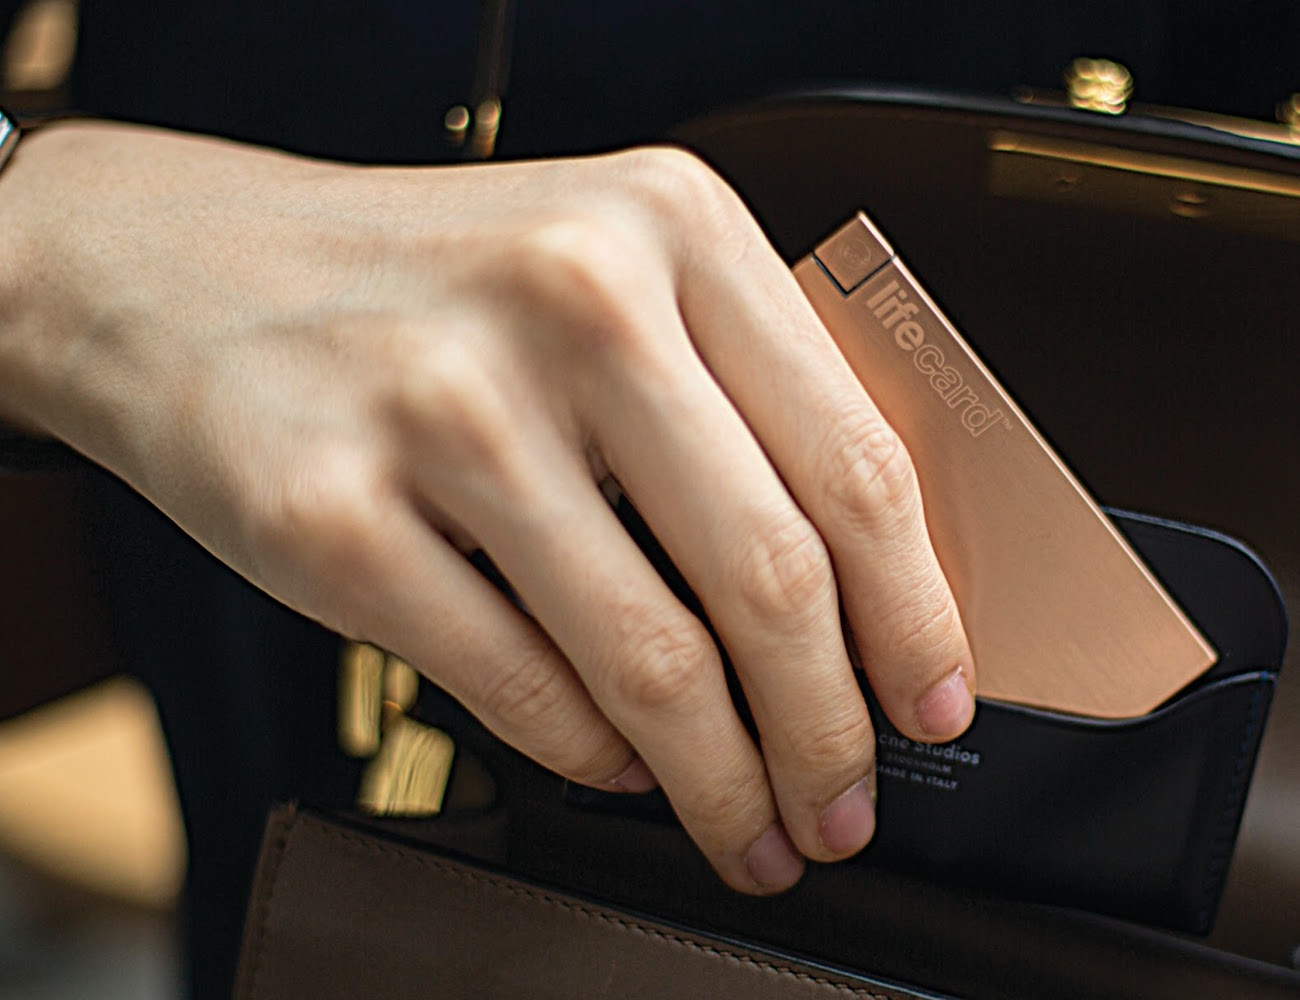 LifeCard – World's Thinnest Most Compact Powerbank